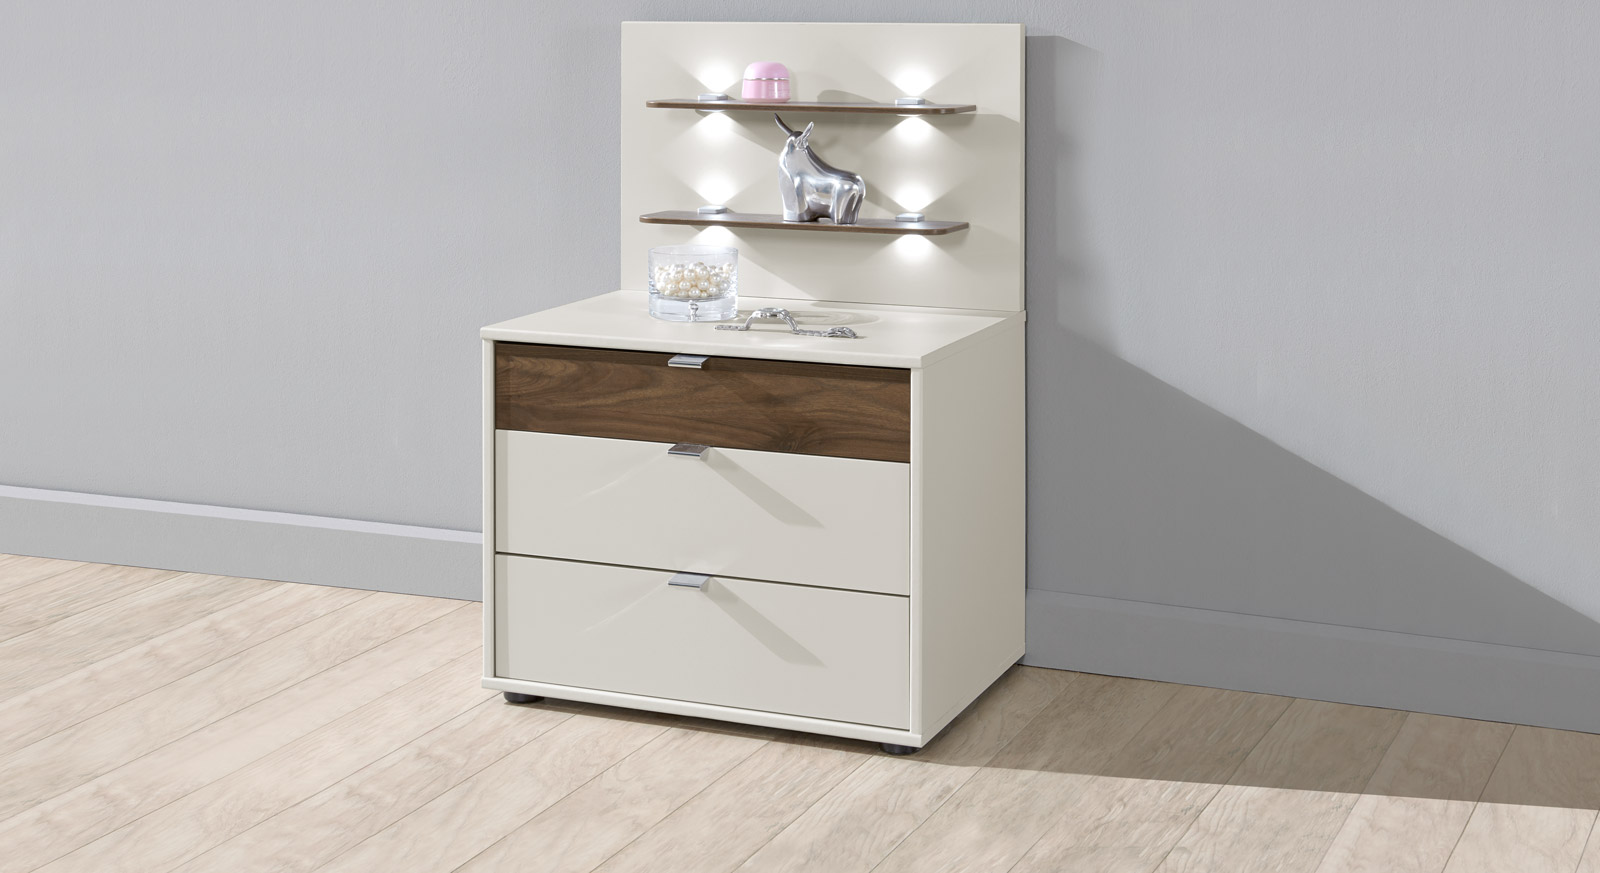 nachtschrank in creme und nussbaum mit modernem design akola. Black Bedroom Furniture Sets. Home Design Ideas